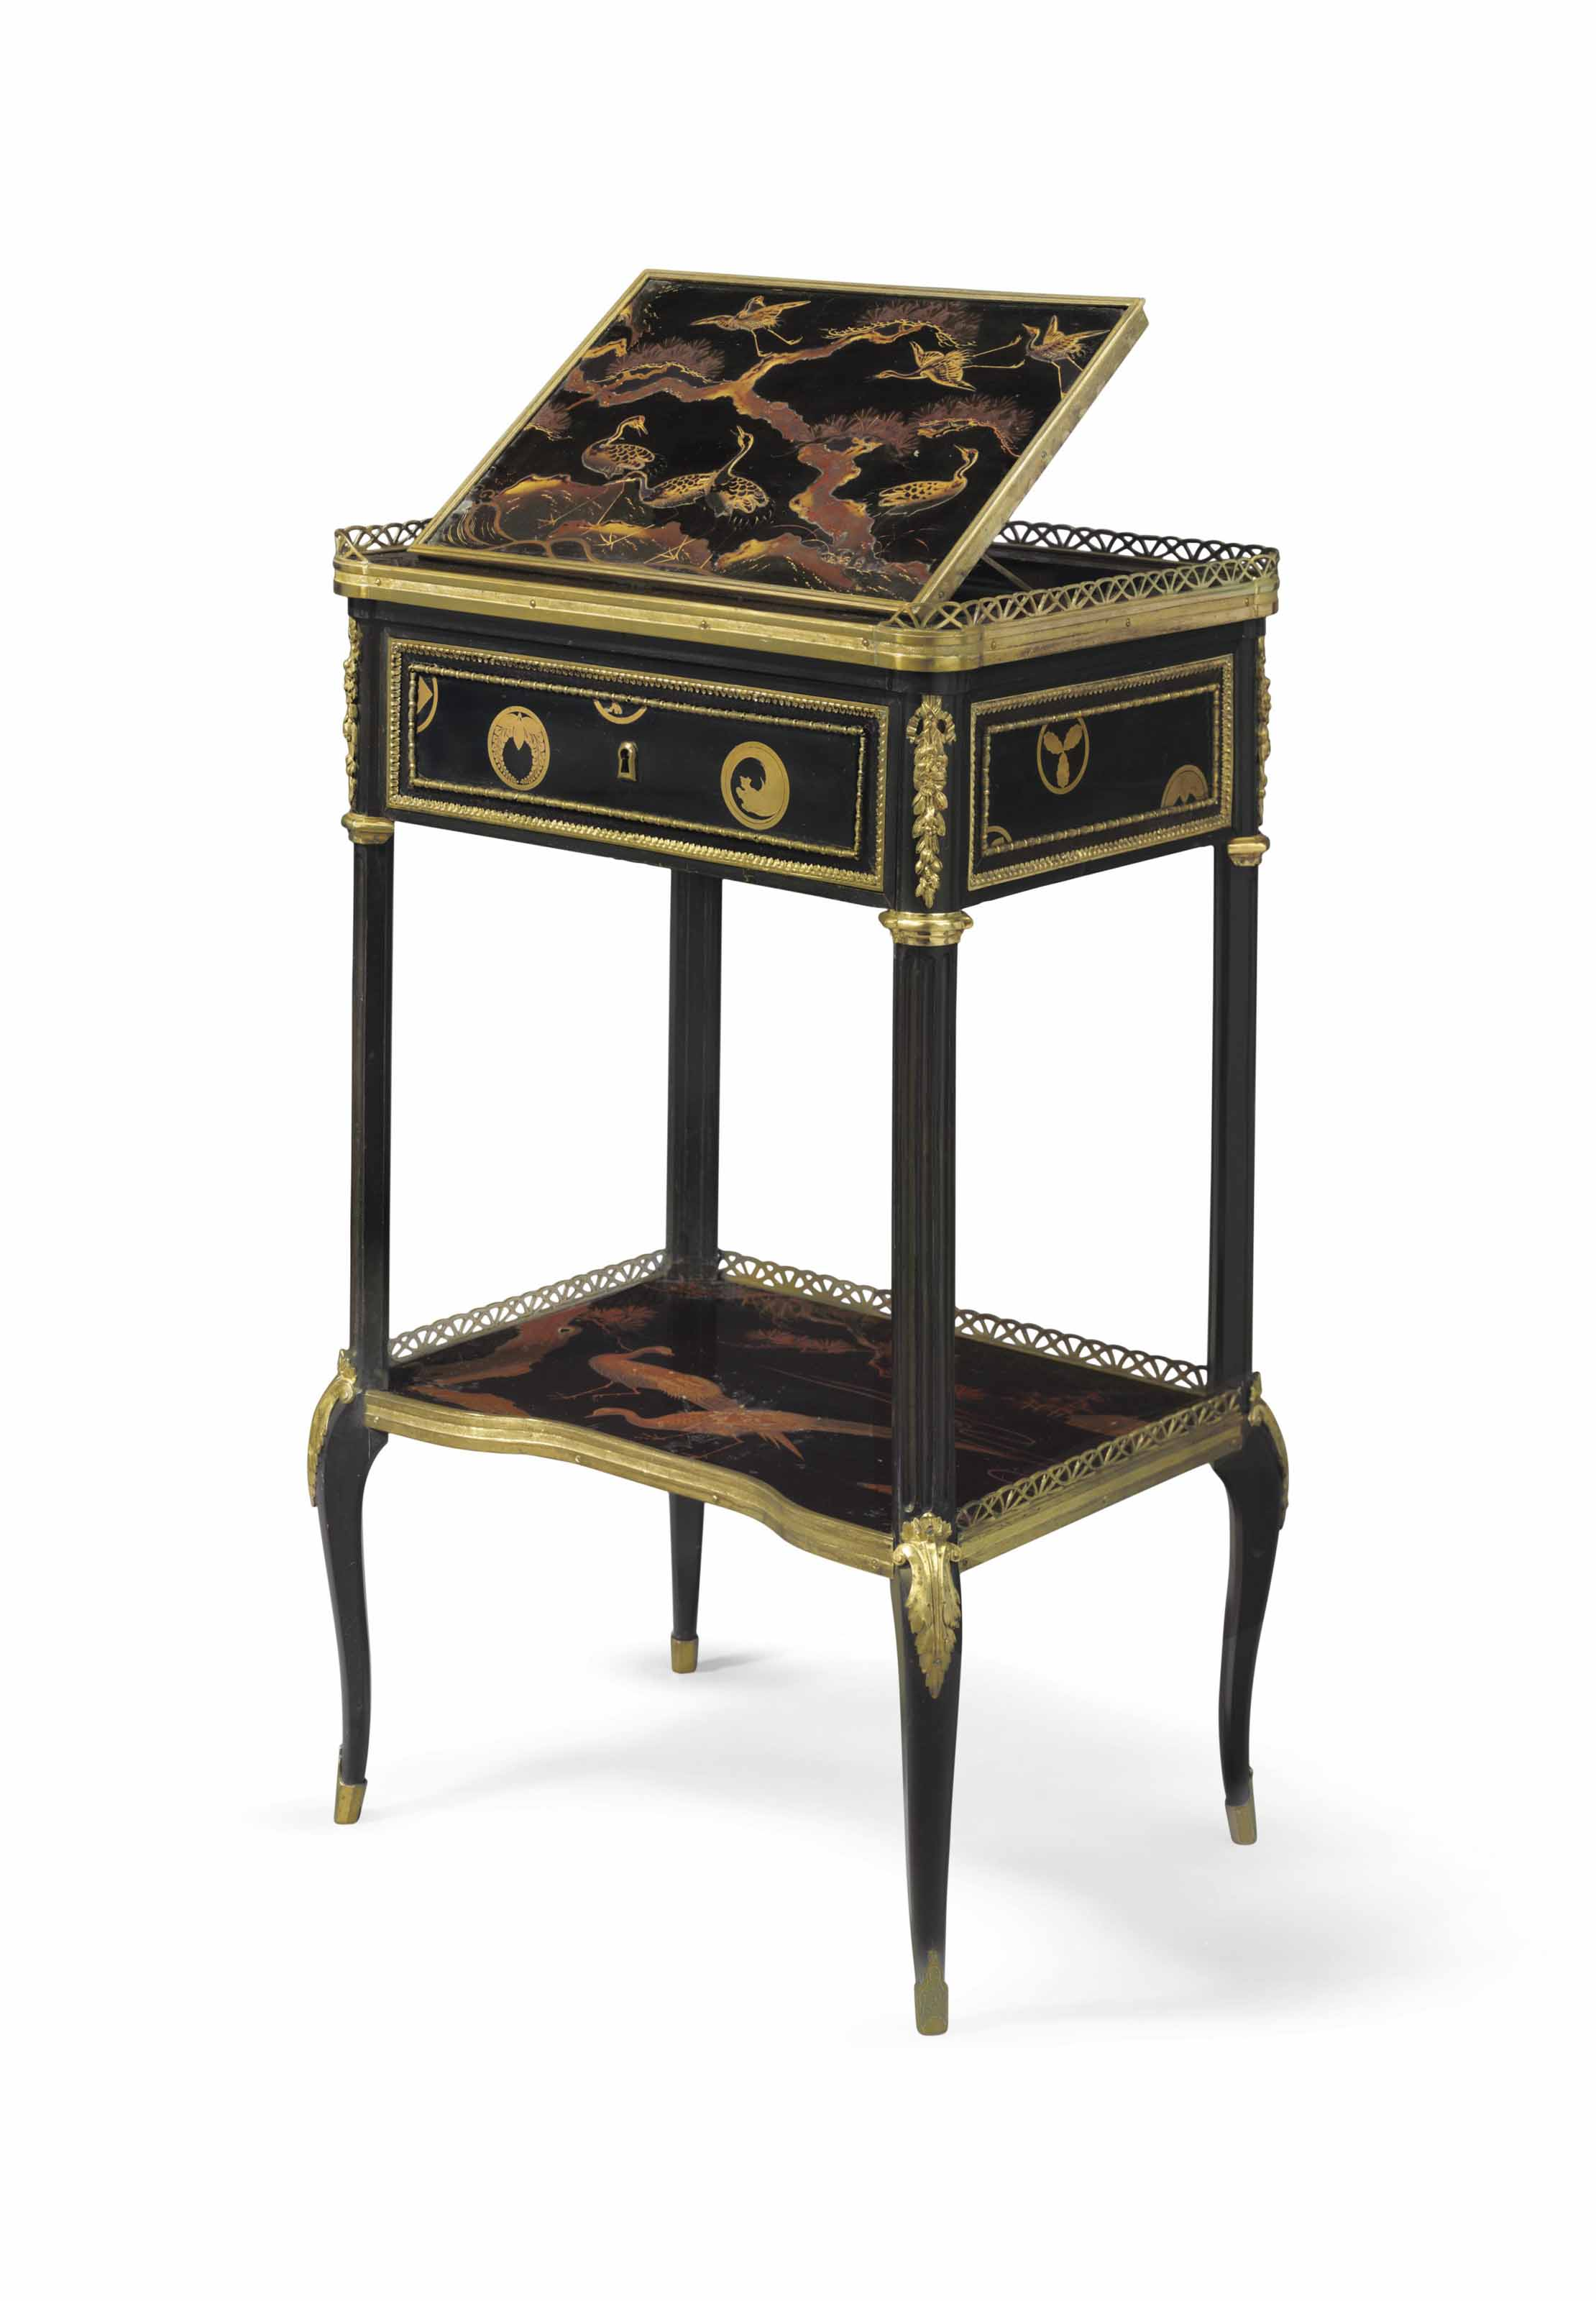 A LOUIS XVI ORMOLU-MOUNTED EBONY AND JAPANESE LACQUER TABLE A PUPITRE